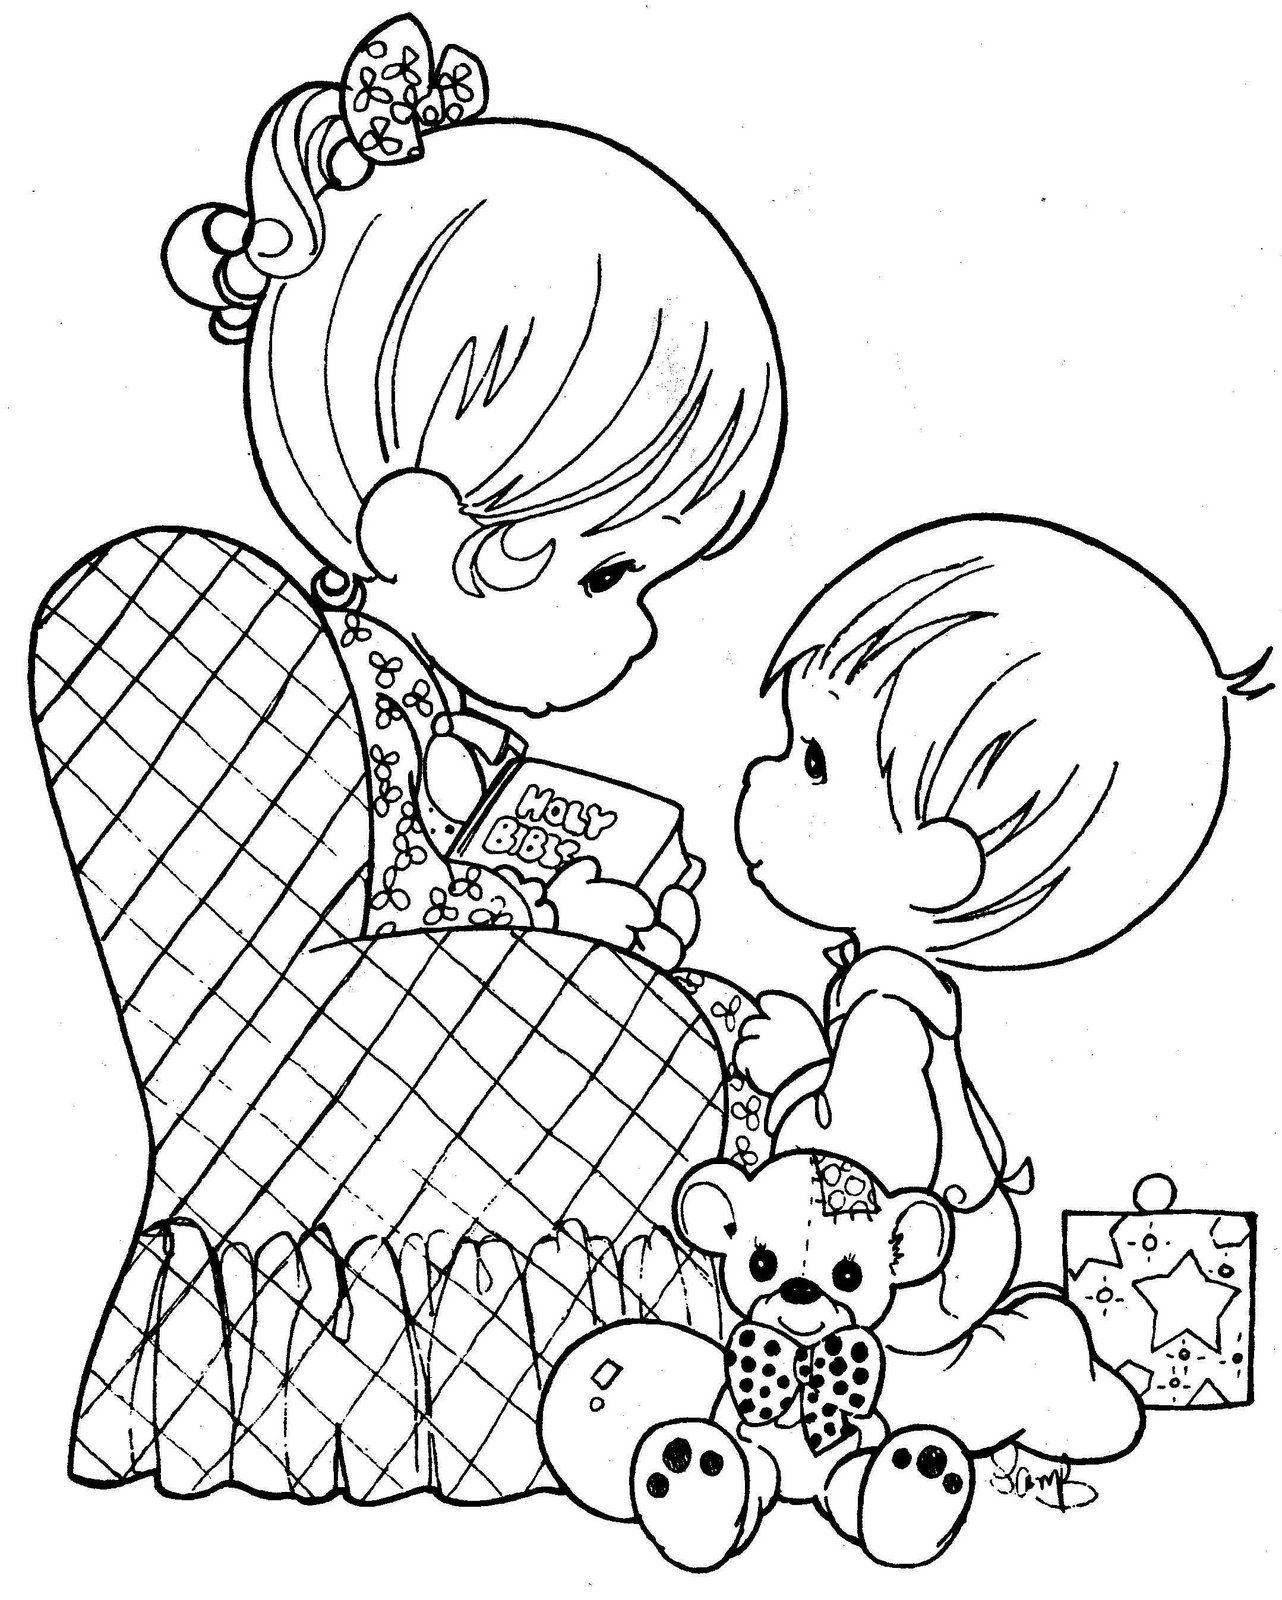 Dulce momentos | coloring pages | Pinterest | Cuentos para dormir ...